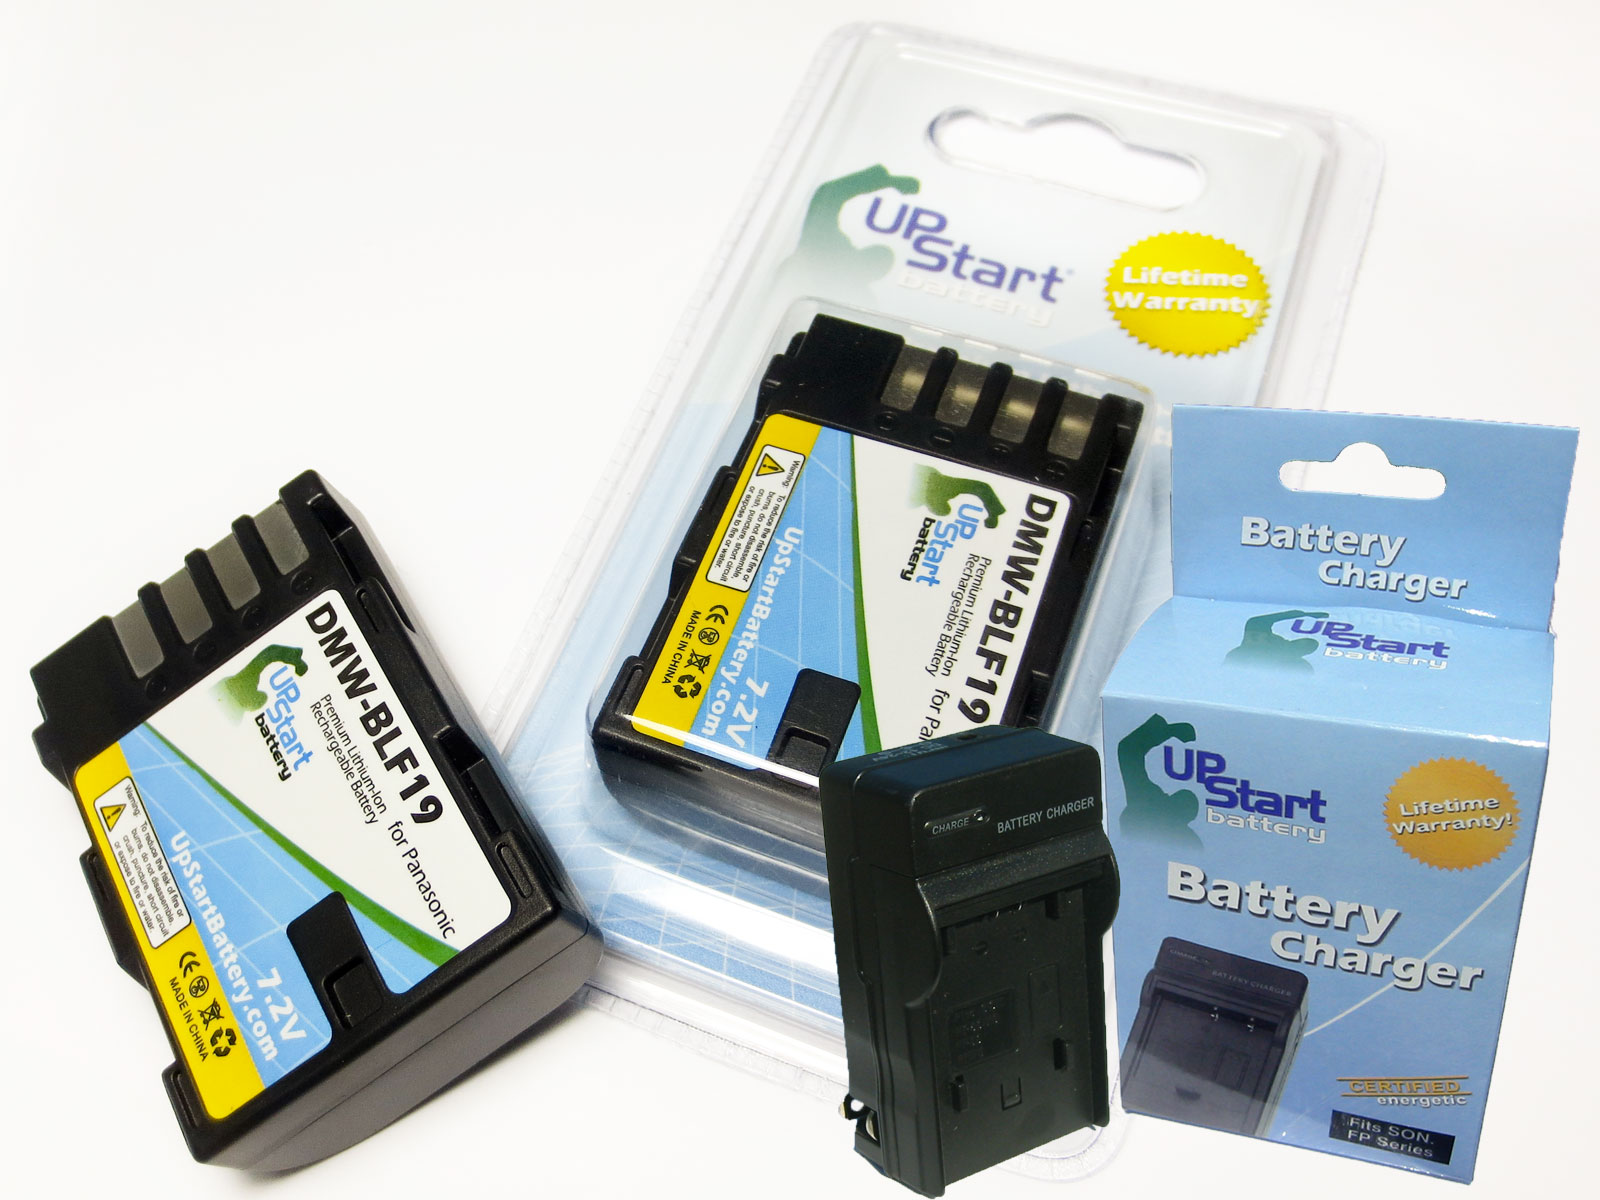 UpStart Battery 2x Pack - Panasonic Lumix DMC-GH3KBODY Digital Camera Battery + Charger - Replacement Kit for Panasonic DMW-BLF19 at Sears.com